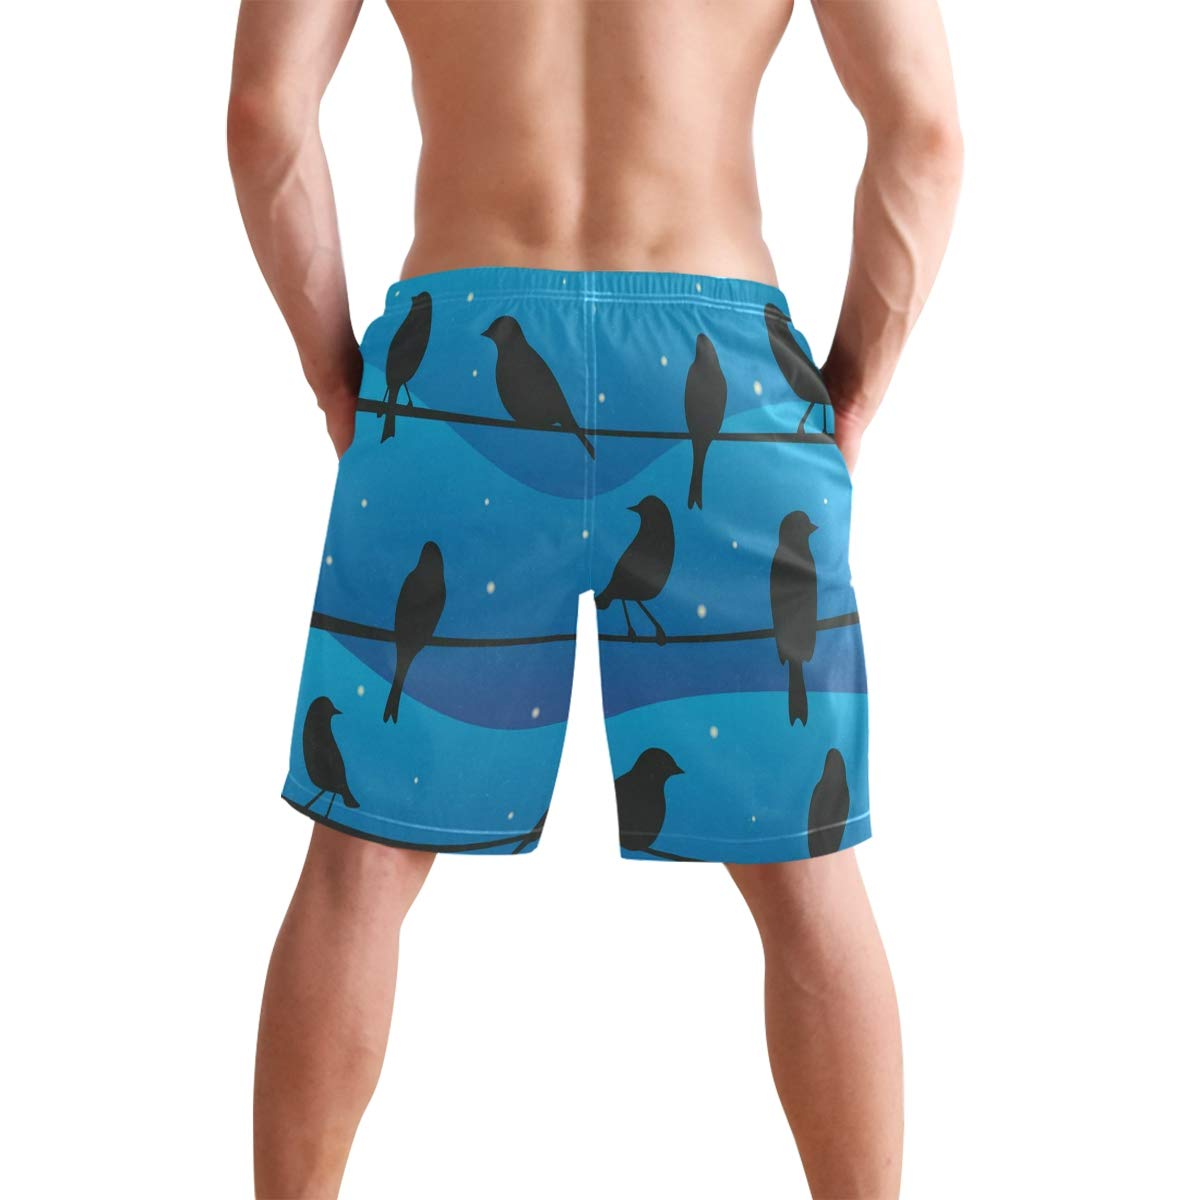 Casual Mens Swim Trunks Breathable Quick Dry Printed Beach Shorts Bird On A Wire at Night Summer Boardshorts with Mesh Lining